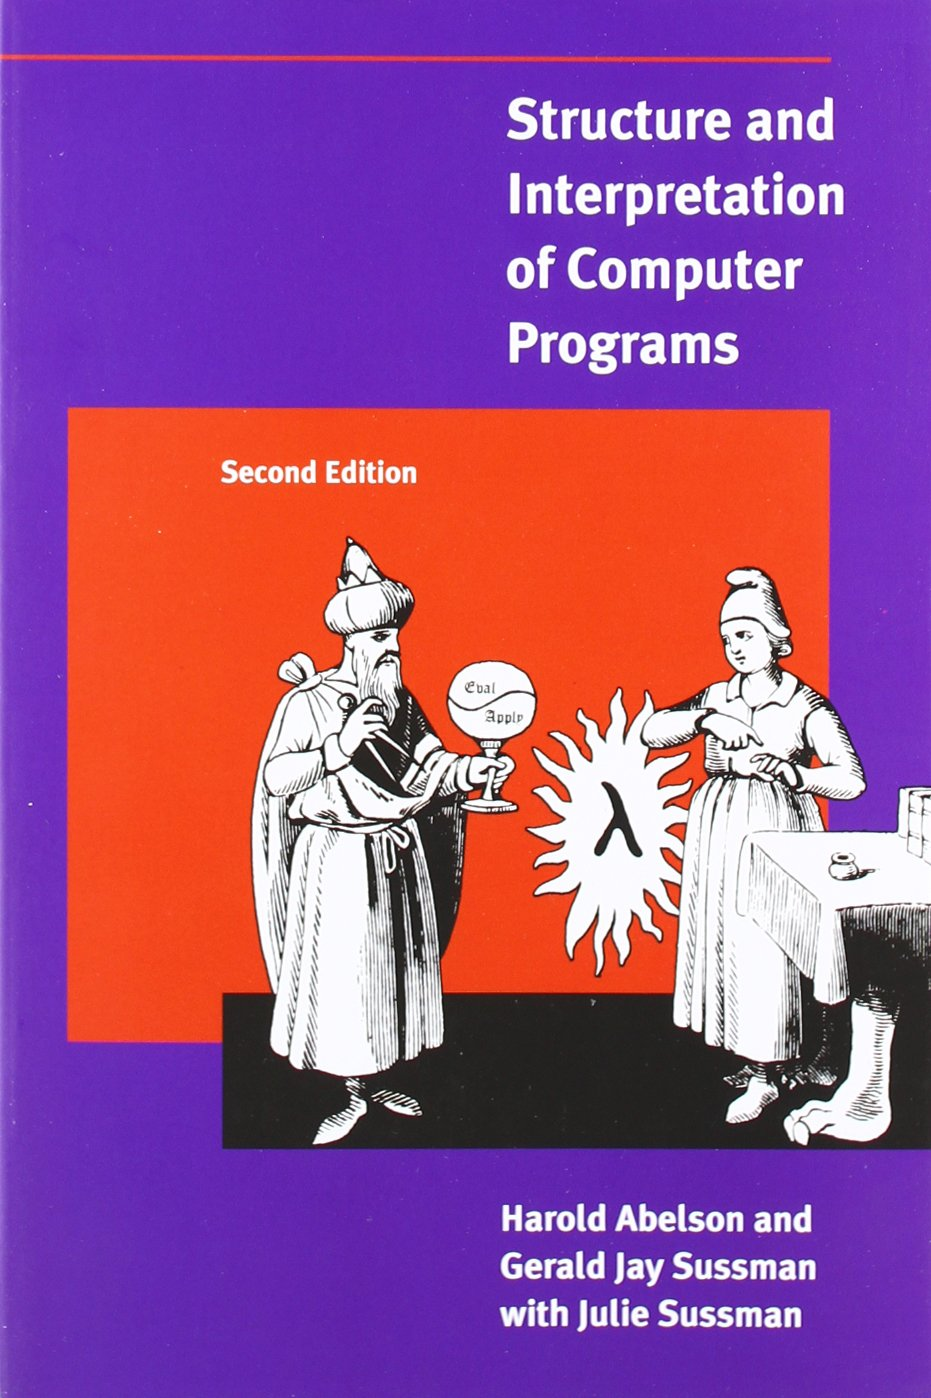 Structure and Interpretation of Computer Programs - 2nd Edition (MIT Electrical Engineering and Computer Science) by imusti